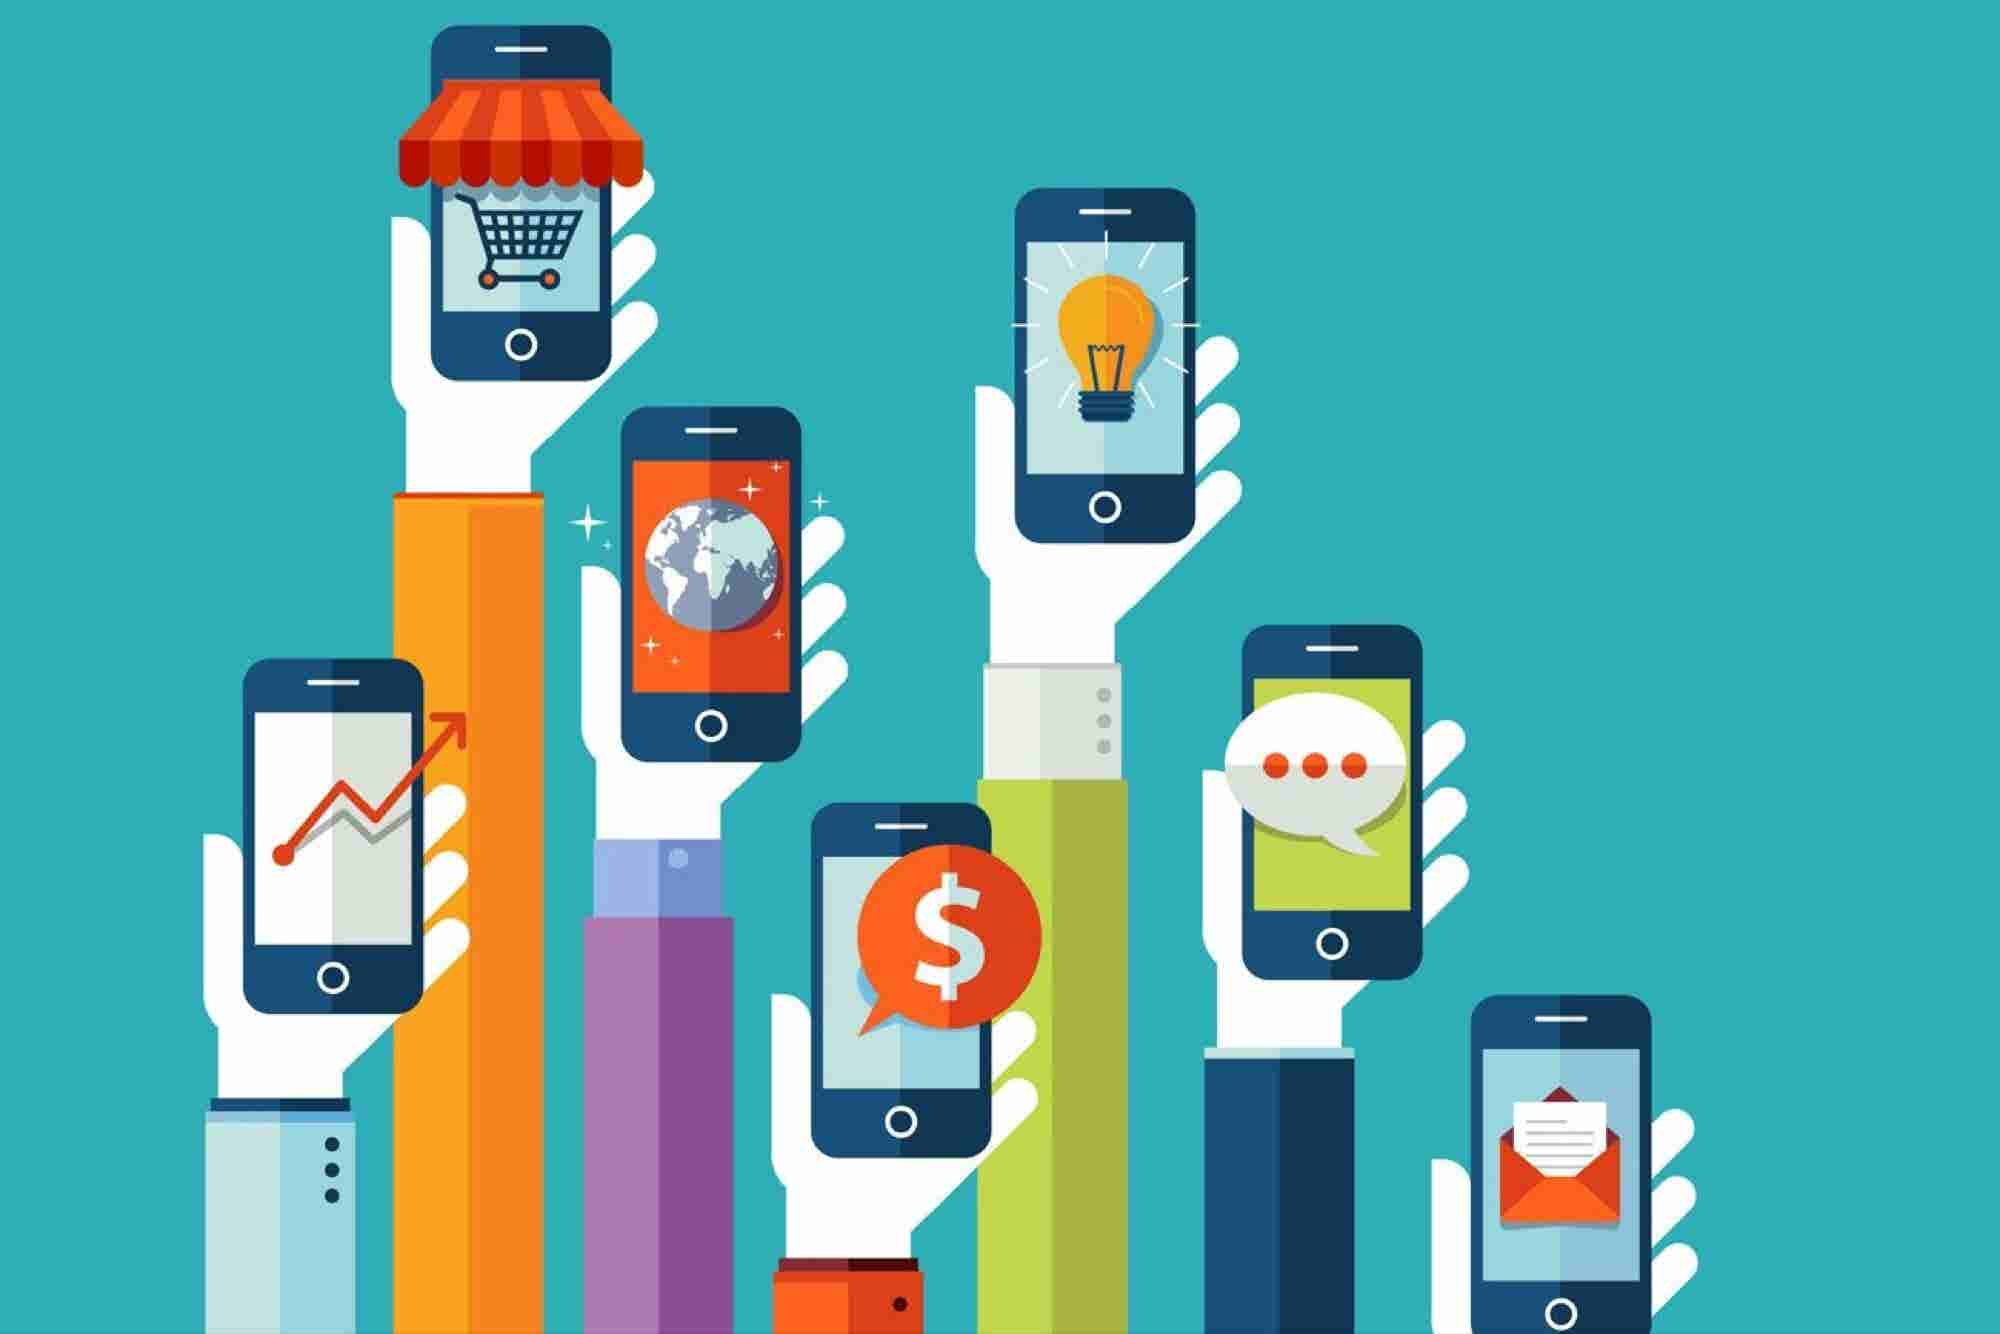 5 Ways to Combat Competition in the Mobile App Industry (Part 1 of 2)